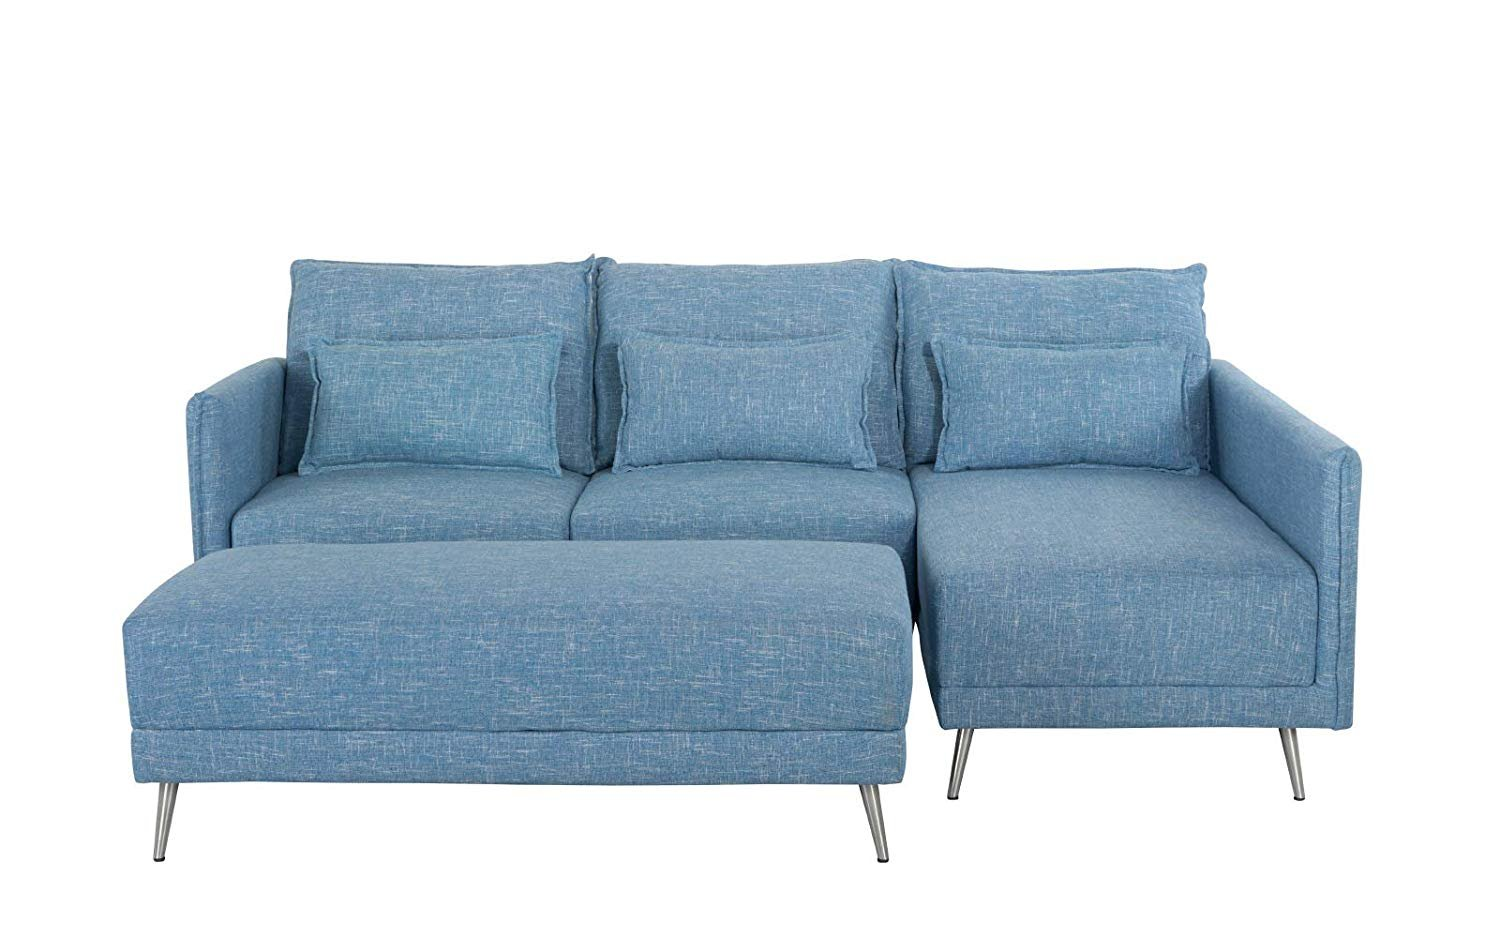 Pleasant Details About Modern 88 1 Inch Sectional Sofa L Shape Couch W Rectangular Ottoman Sky Blue Dailytribune Chair Design For Home Dailytribuneorg